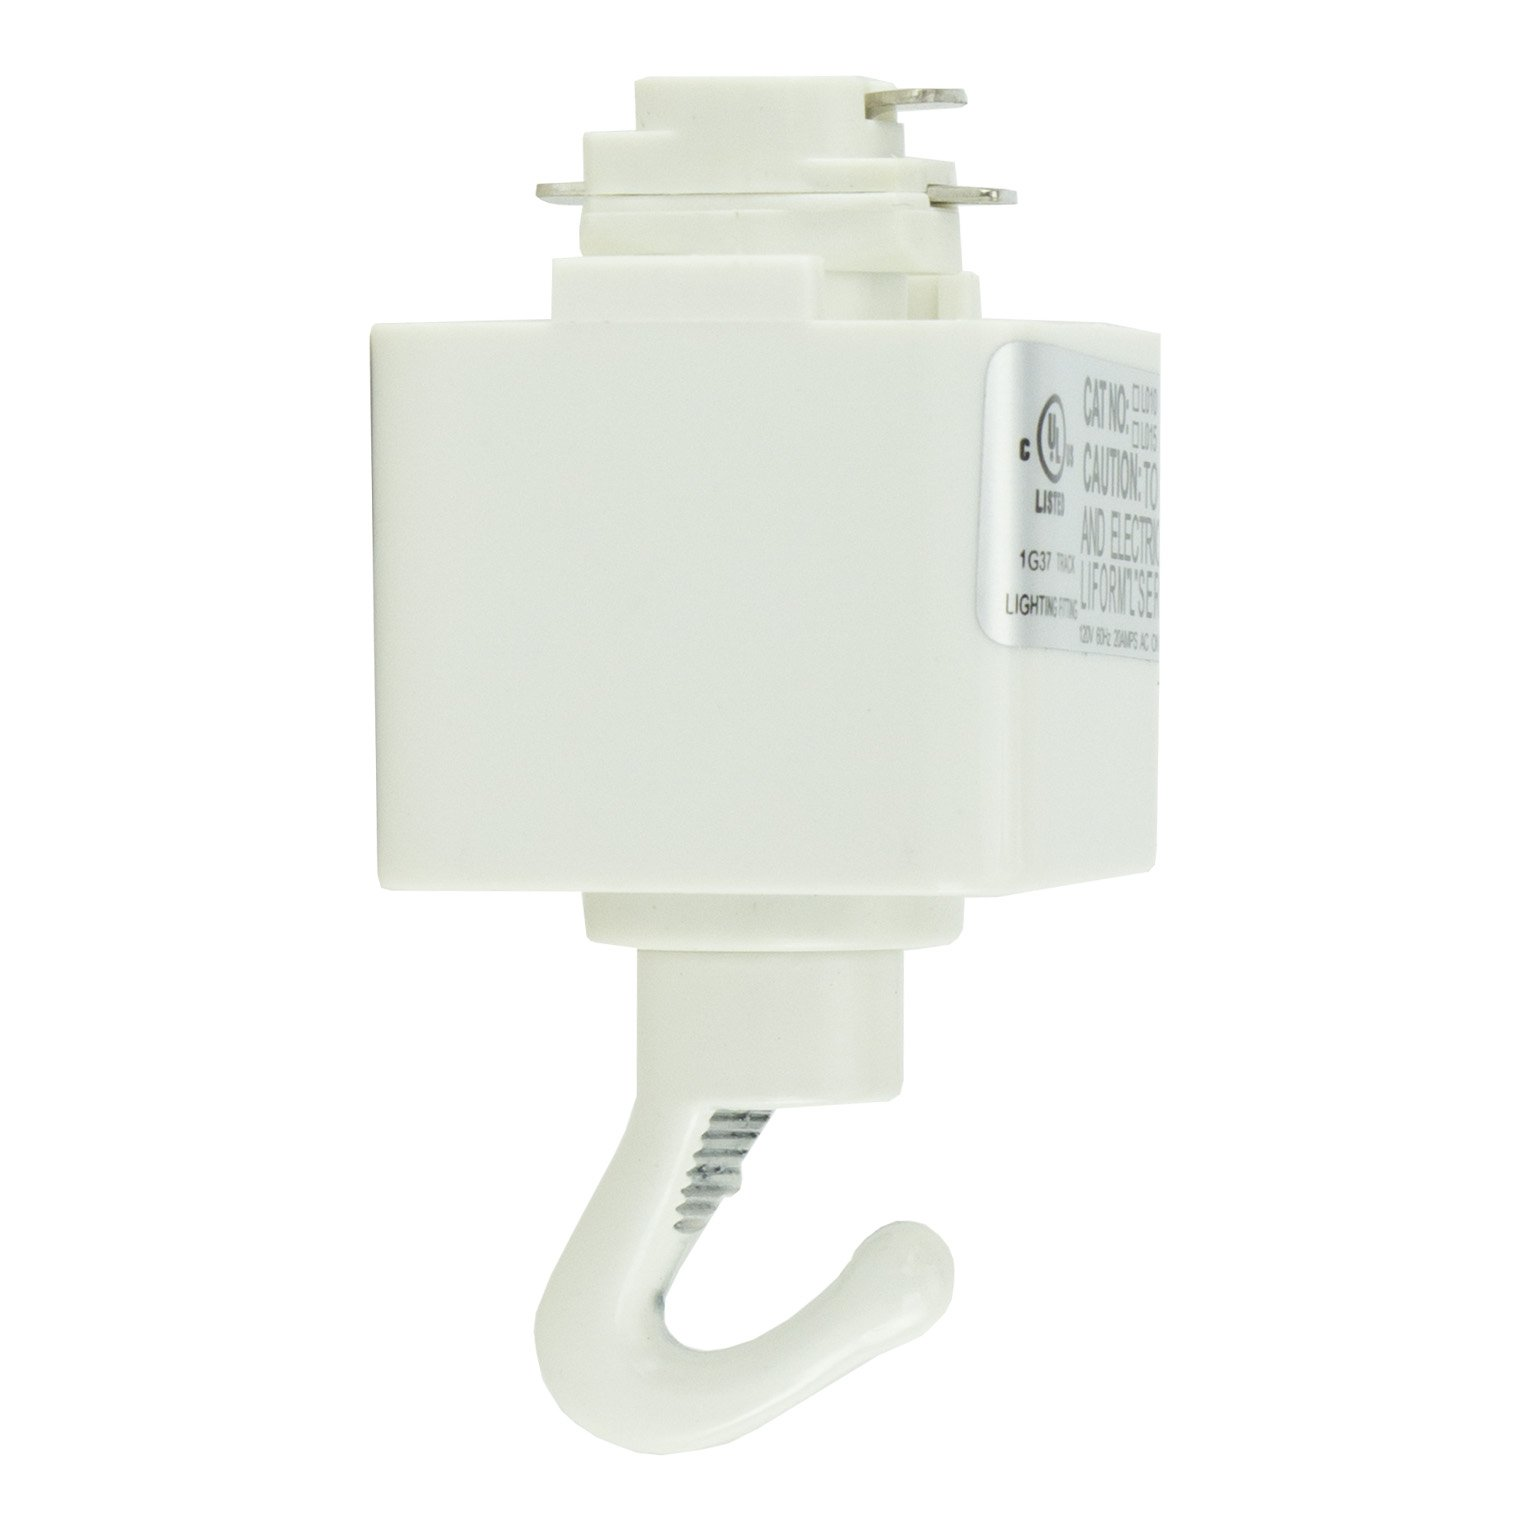 Direct-Lighting H System Track Adapter with Hook H870-WH (White)